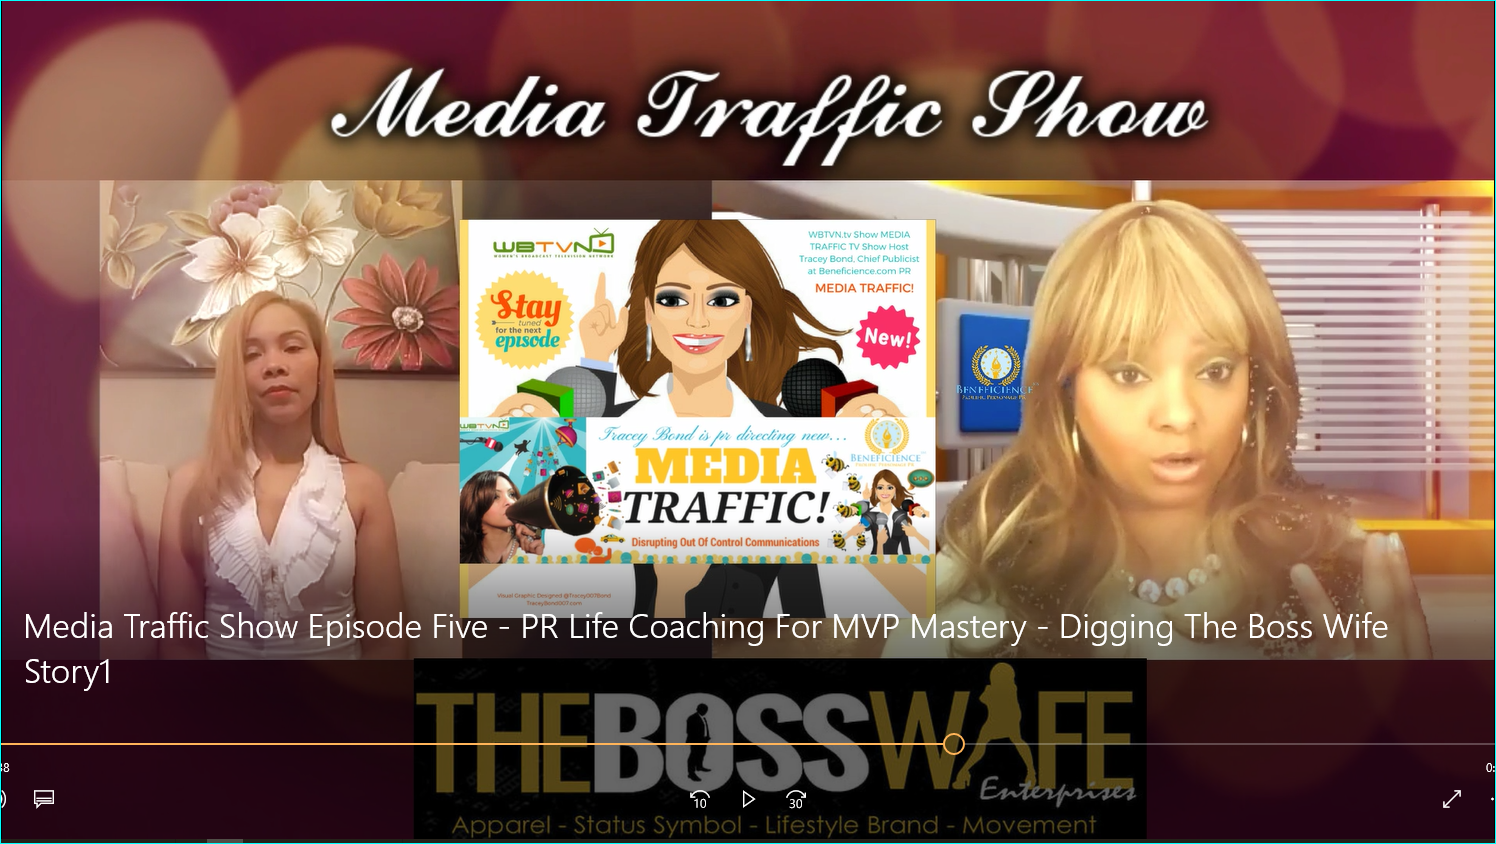 Media Traffic PR TV Show Episode 5 - Crysta Wicks Promo Snap Capts Promo Airs Media Monday April 24 2017.PNG